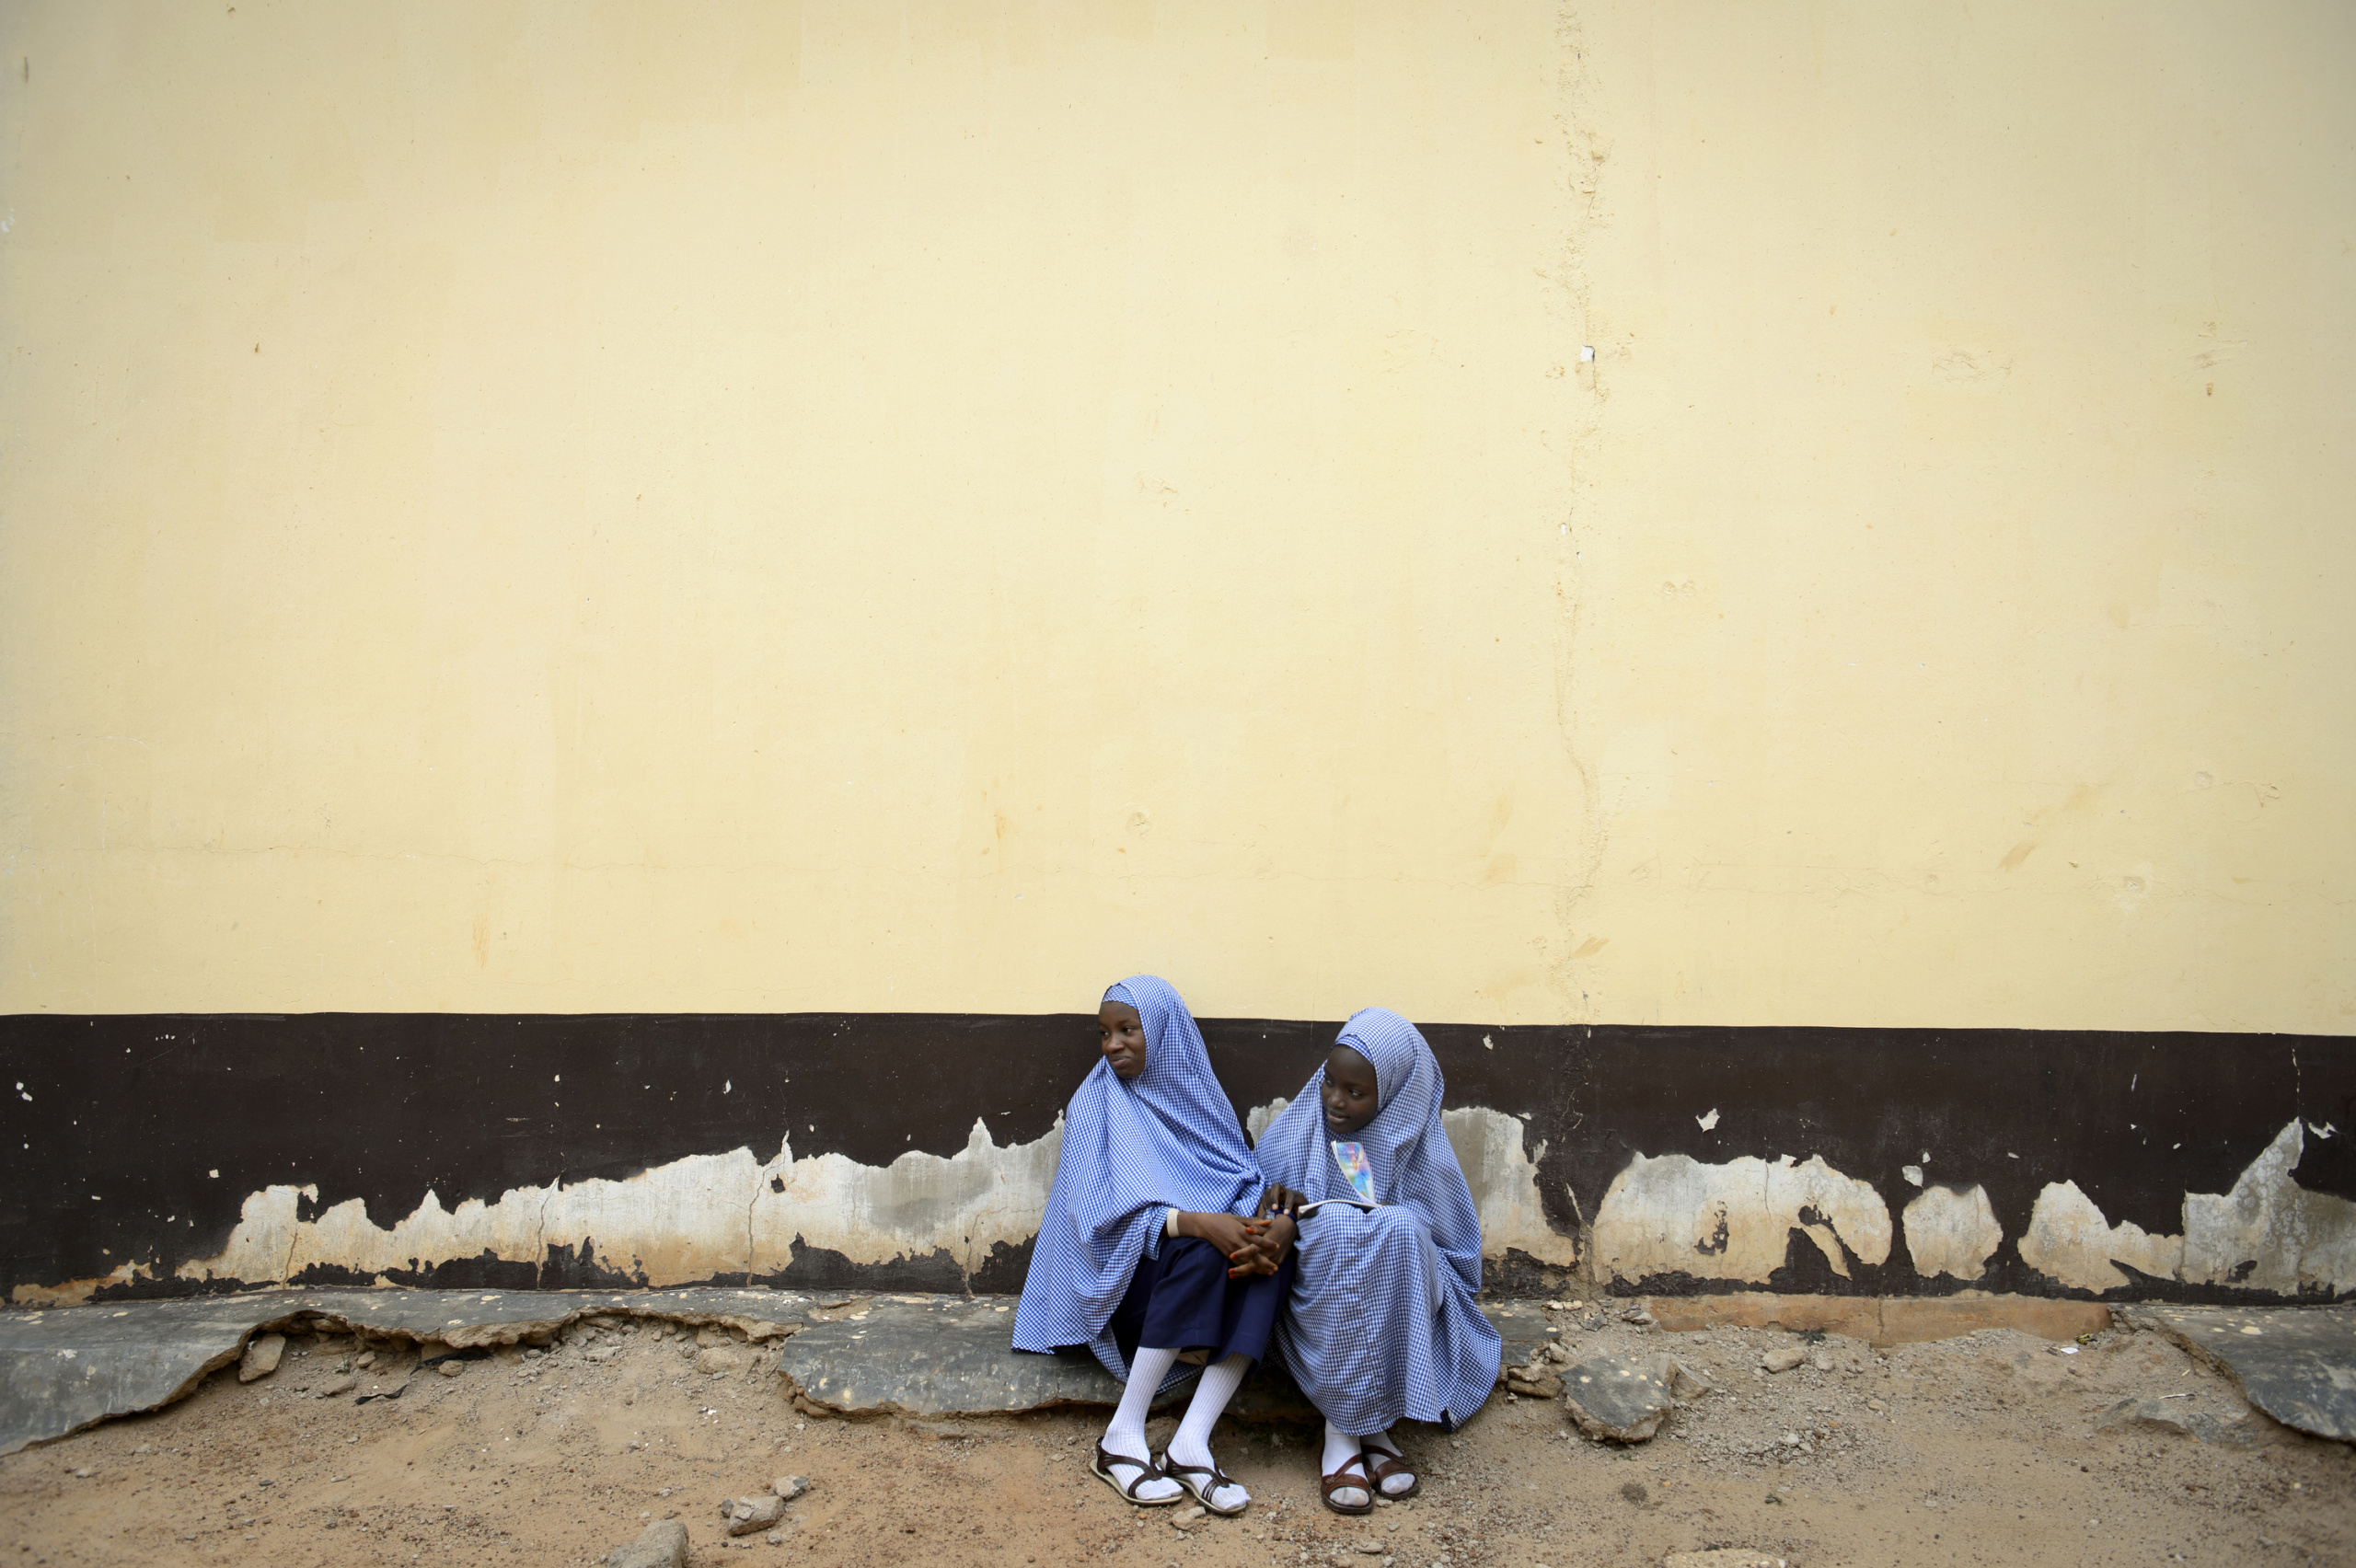 NIGERIA,Kaduna. Two girls in an interdenominational school of Kaduna. Nearly 4,000 people have died in Nigeria due to the violent conflict over the past decade. The economic and ethnic conflict in the northern states has a religious dimension. It is only with true governance that these conflicting differences could be managed. As elsewhere in Nigeria, residents accuse both local and state government officials for promoting identity-based divisions to advance their own political agendas.